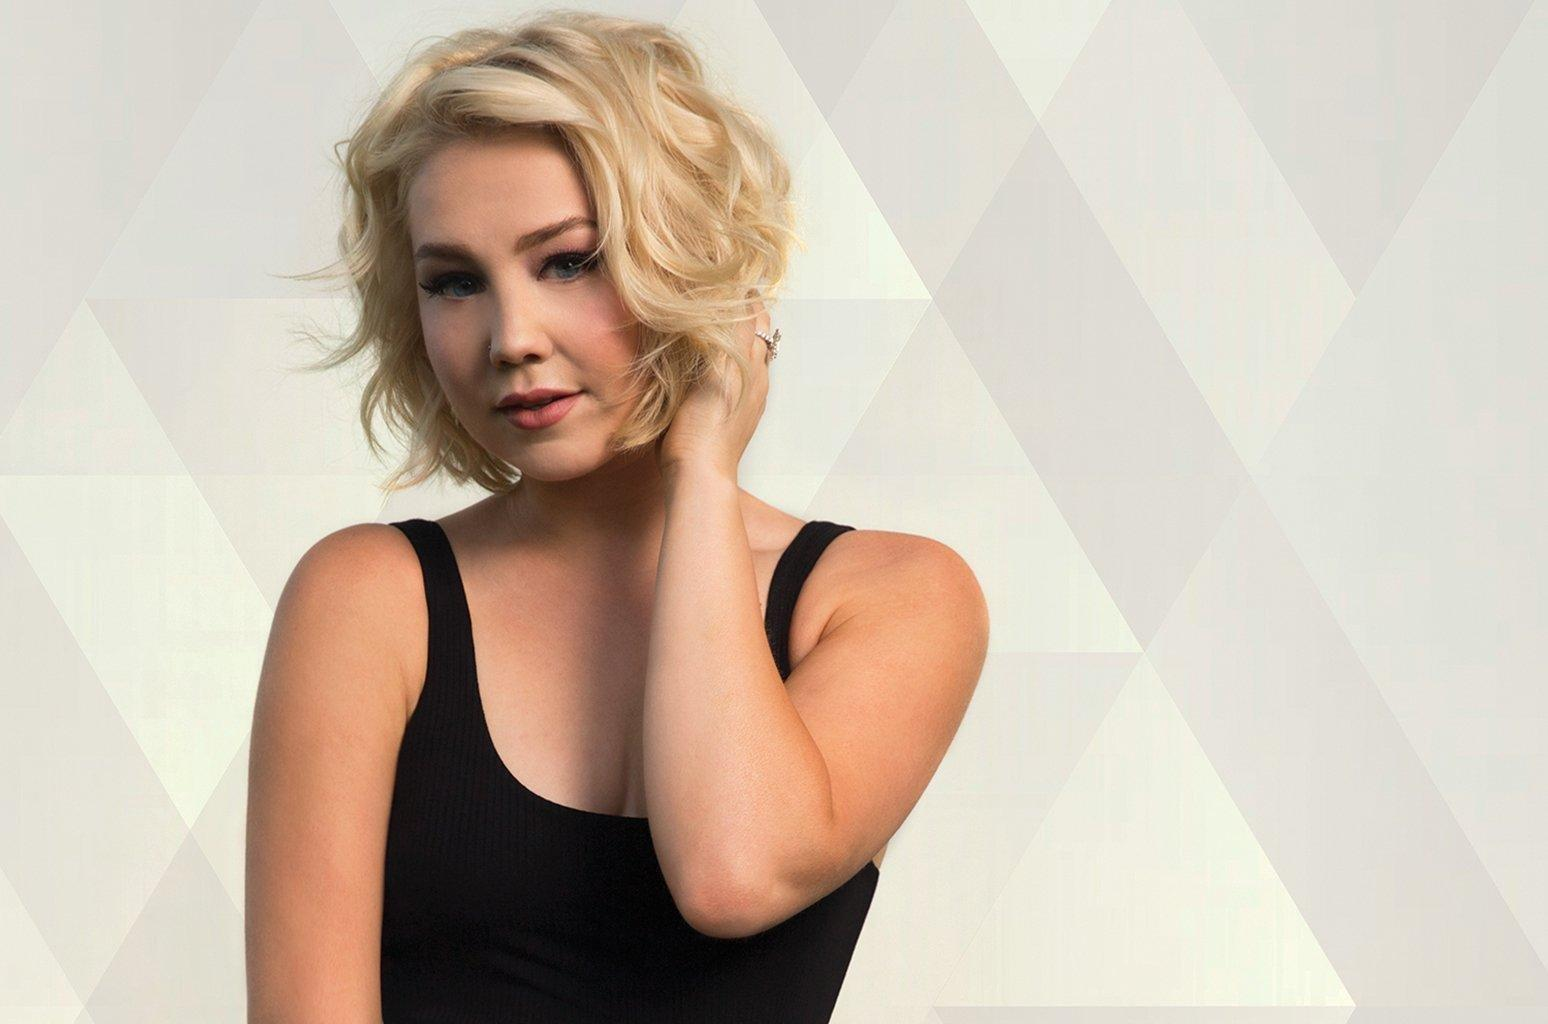 Despite Challenges, Raelynn, Eric Paslay And Other Stars Don't Let Type 1 Diabetes Limit Their Dreams